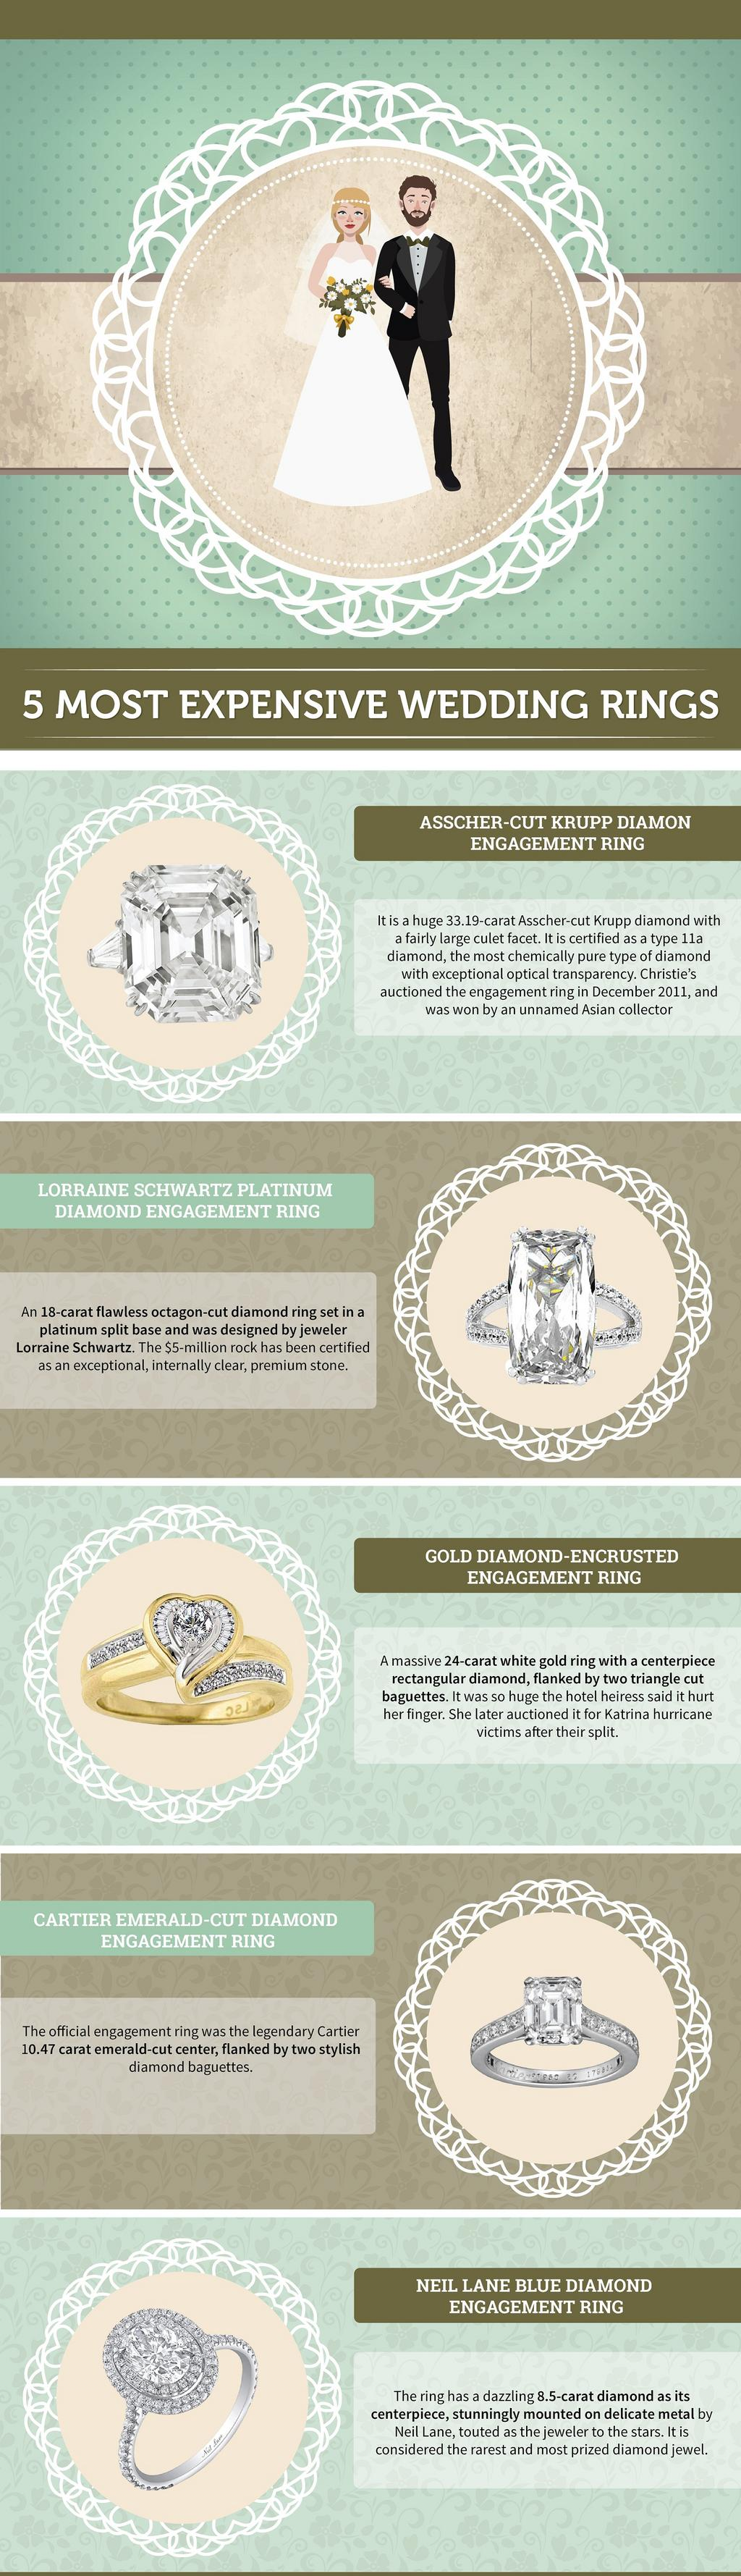 The 5 Most Expensive Wedding Rings Ever Made